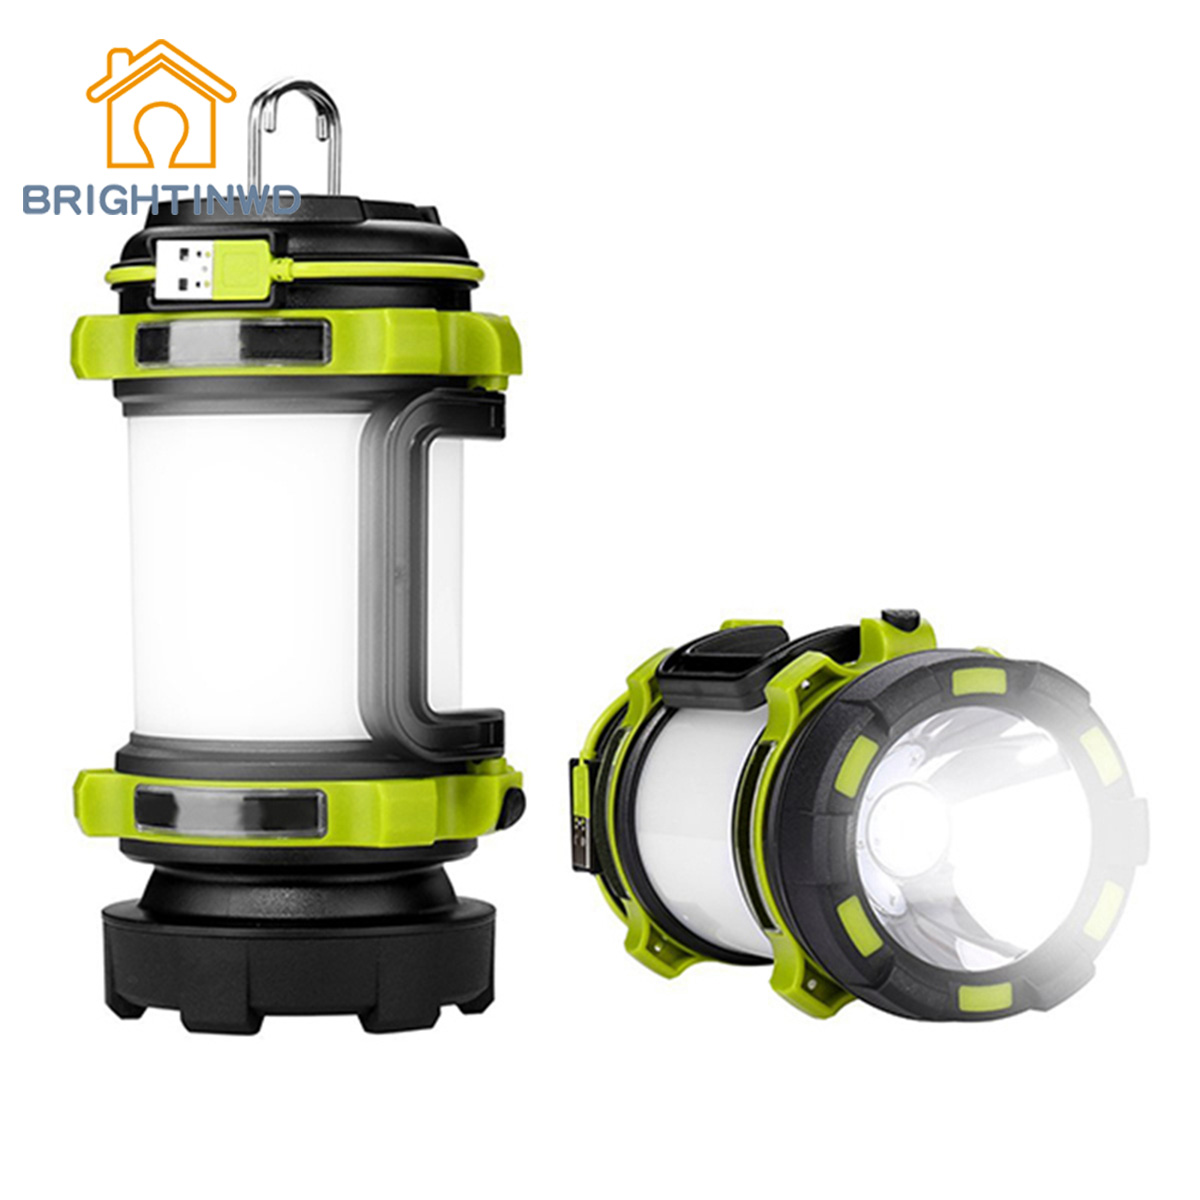 BRIGHTINWD LED Camping Lantern Spotlight Flashlight Waterproof Rechargeable 2600mAh Power Bank DC5V Hiking Emergency Tent crown micro cms 602 black акустическая система